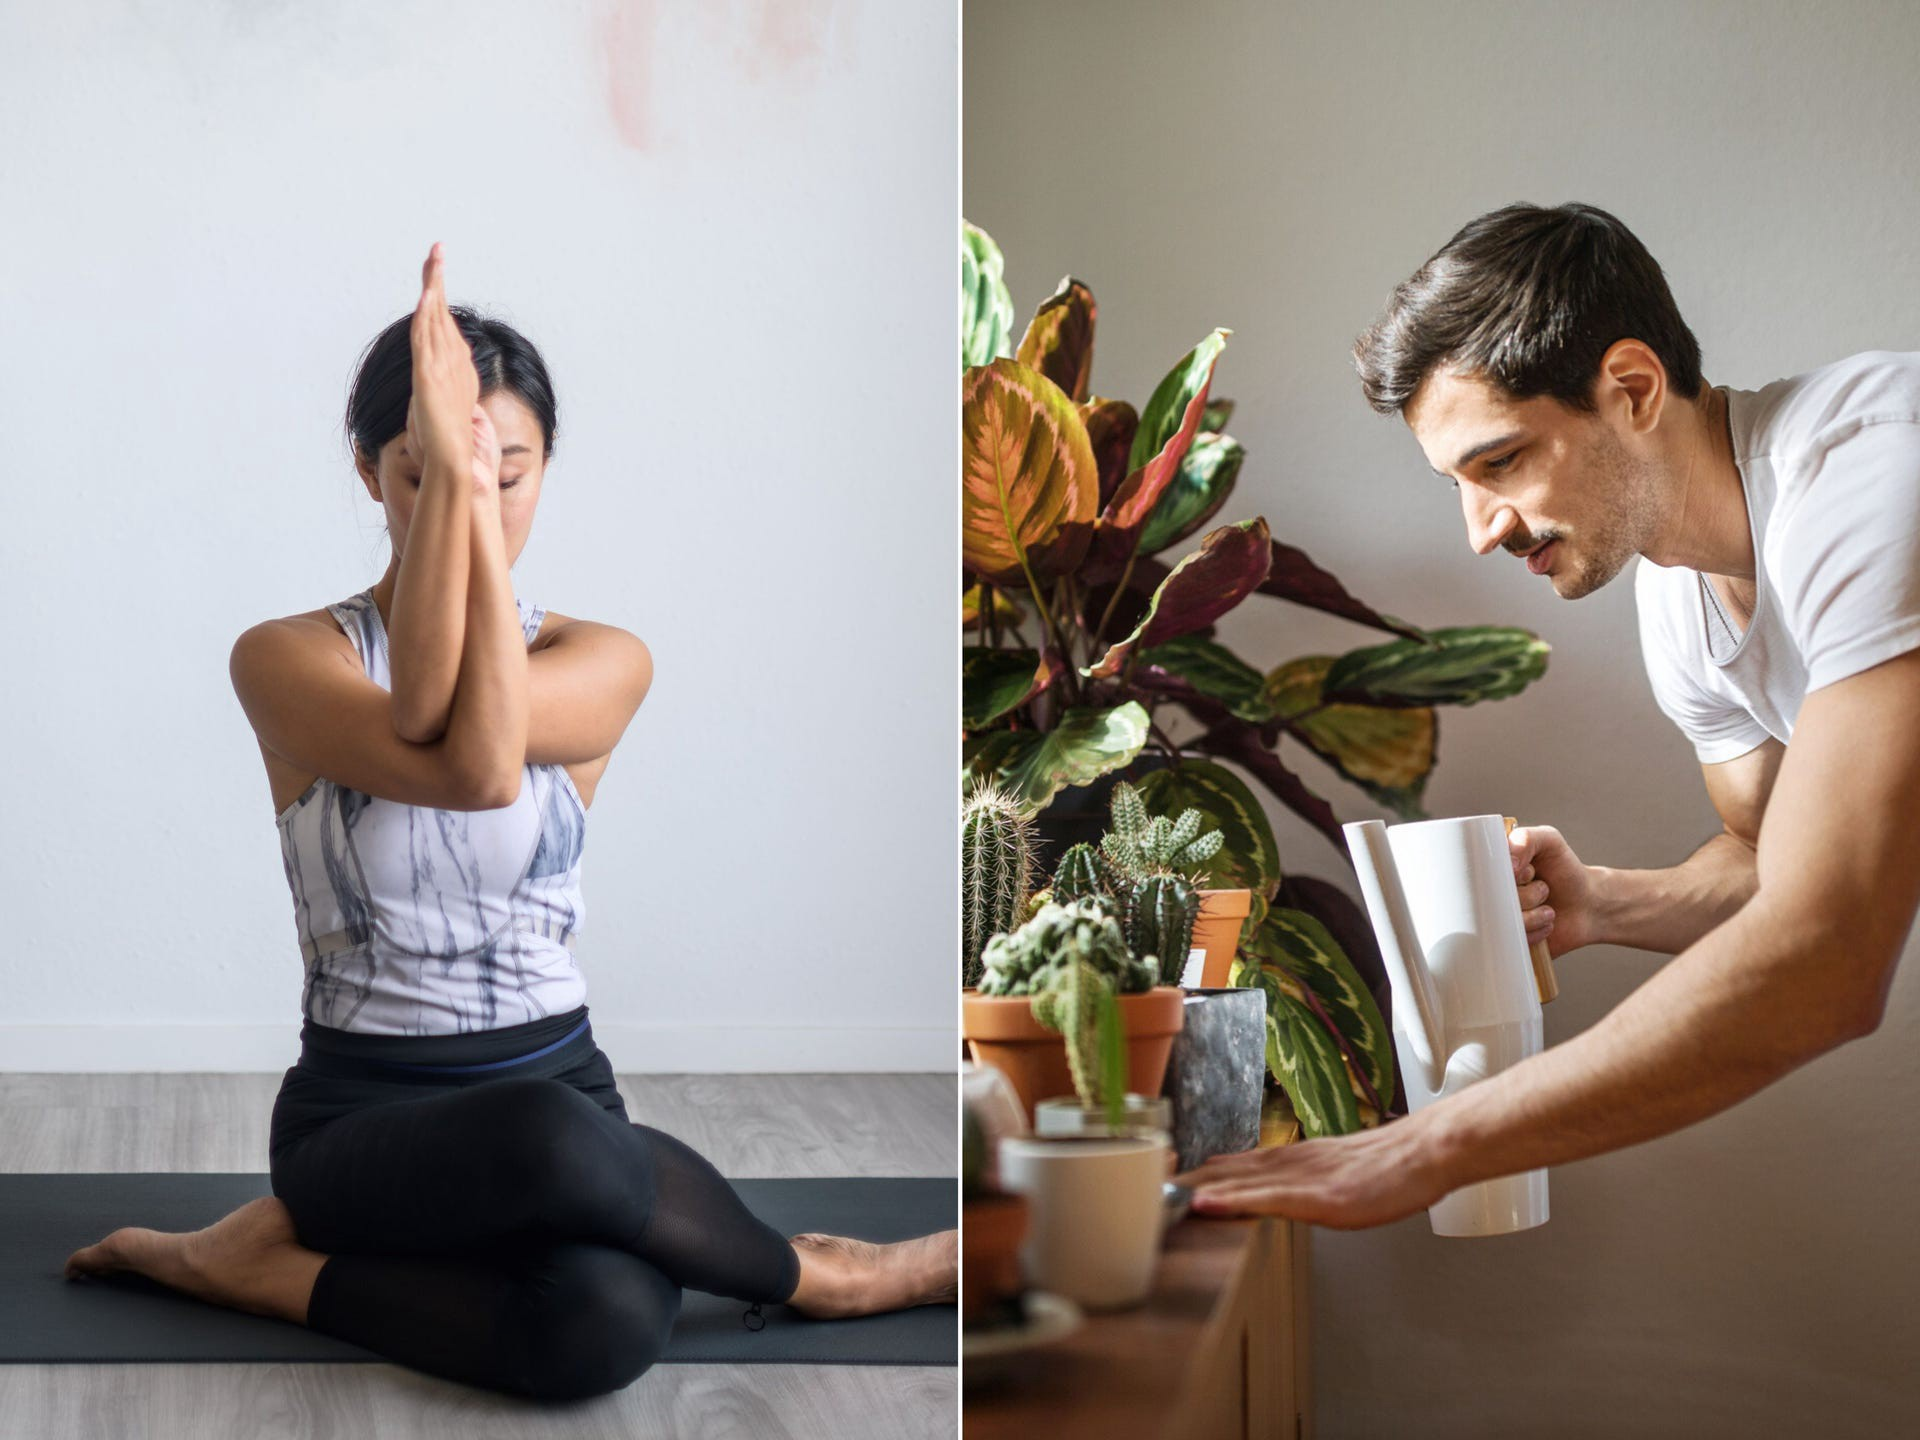 Activities like yoga and gardening can be positive ways to relieve stress or feelings of anxiety.